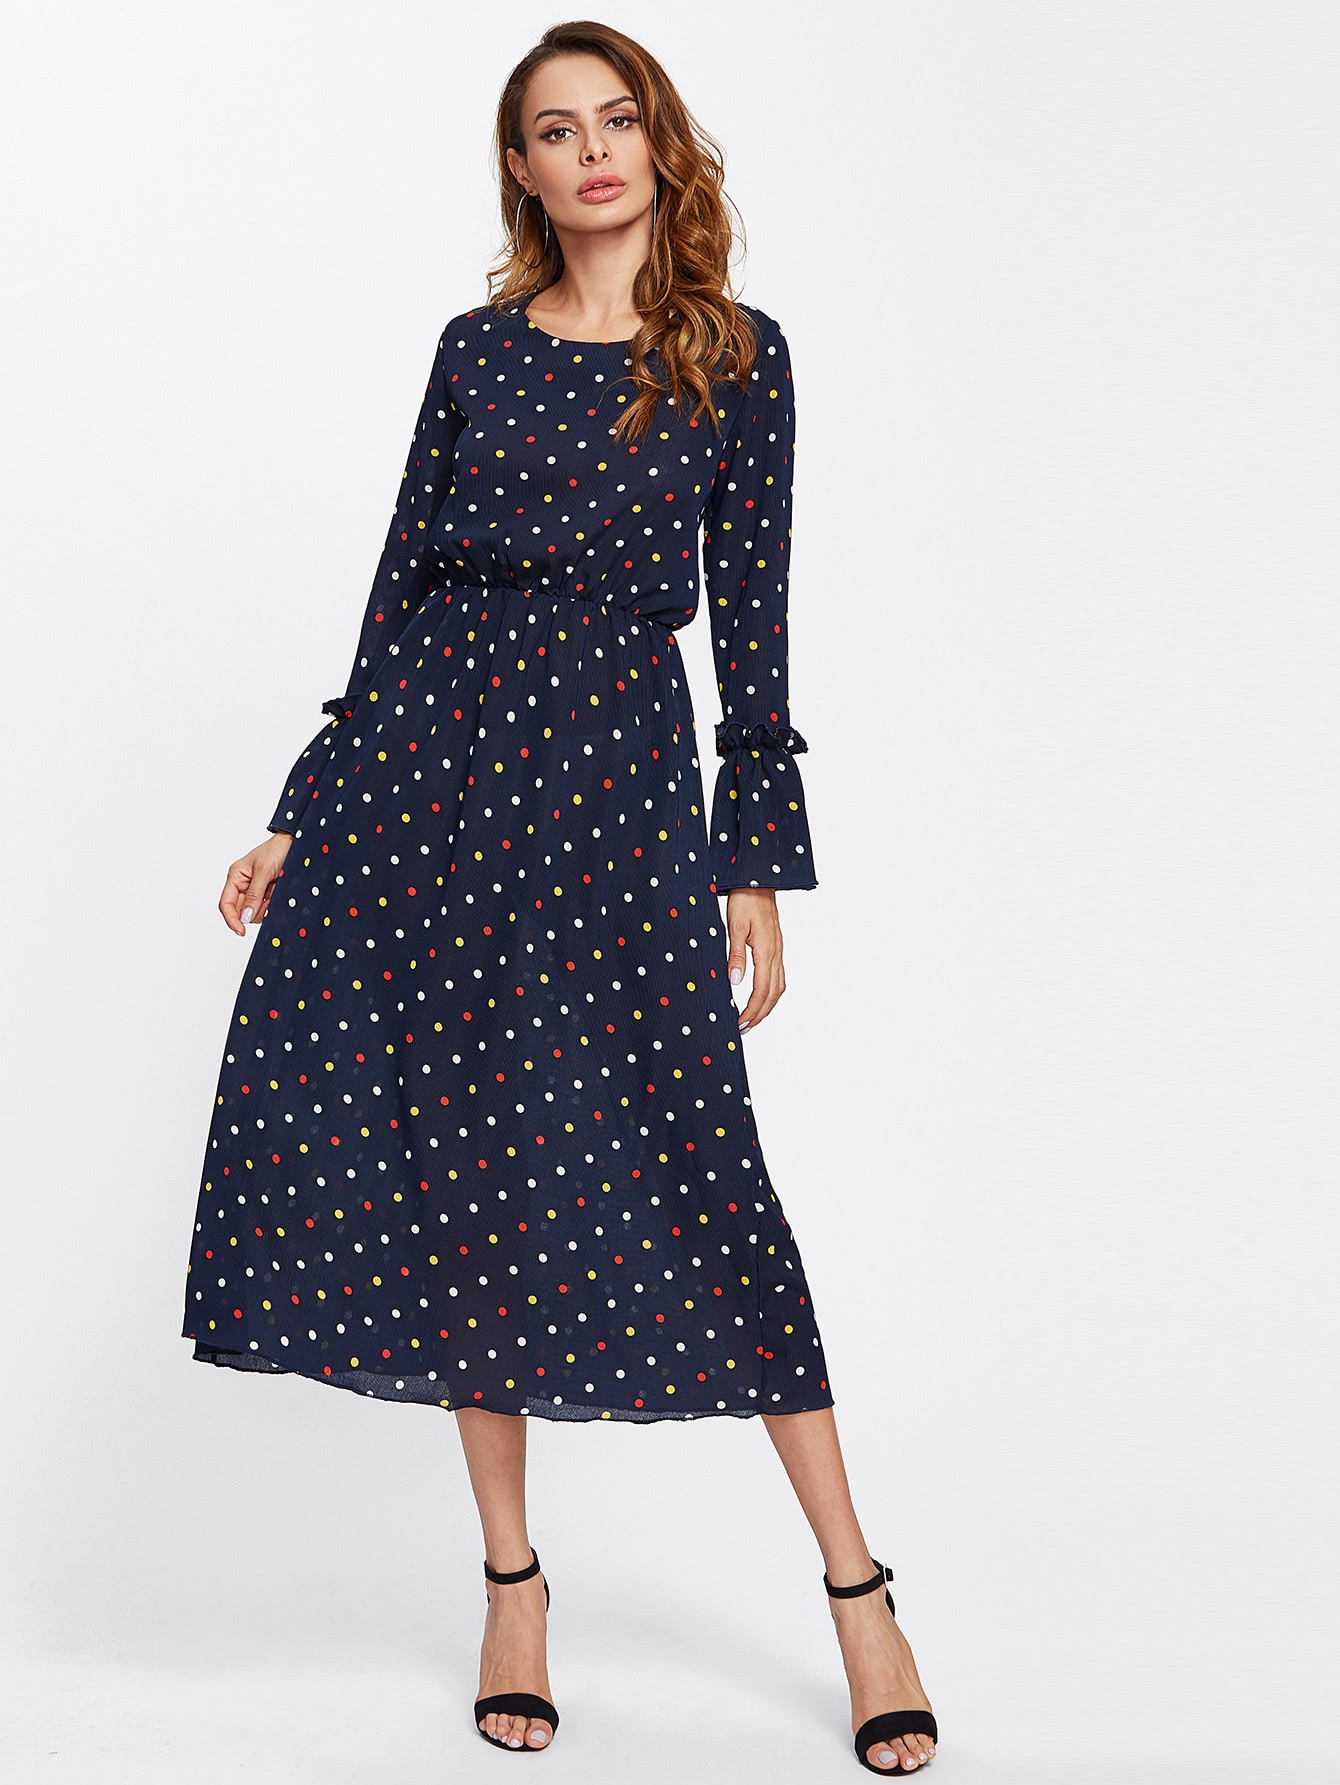 Frilled Bell Cuff Button Back Polka Dot Dress print front button frilled dress